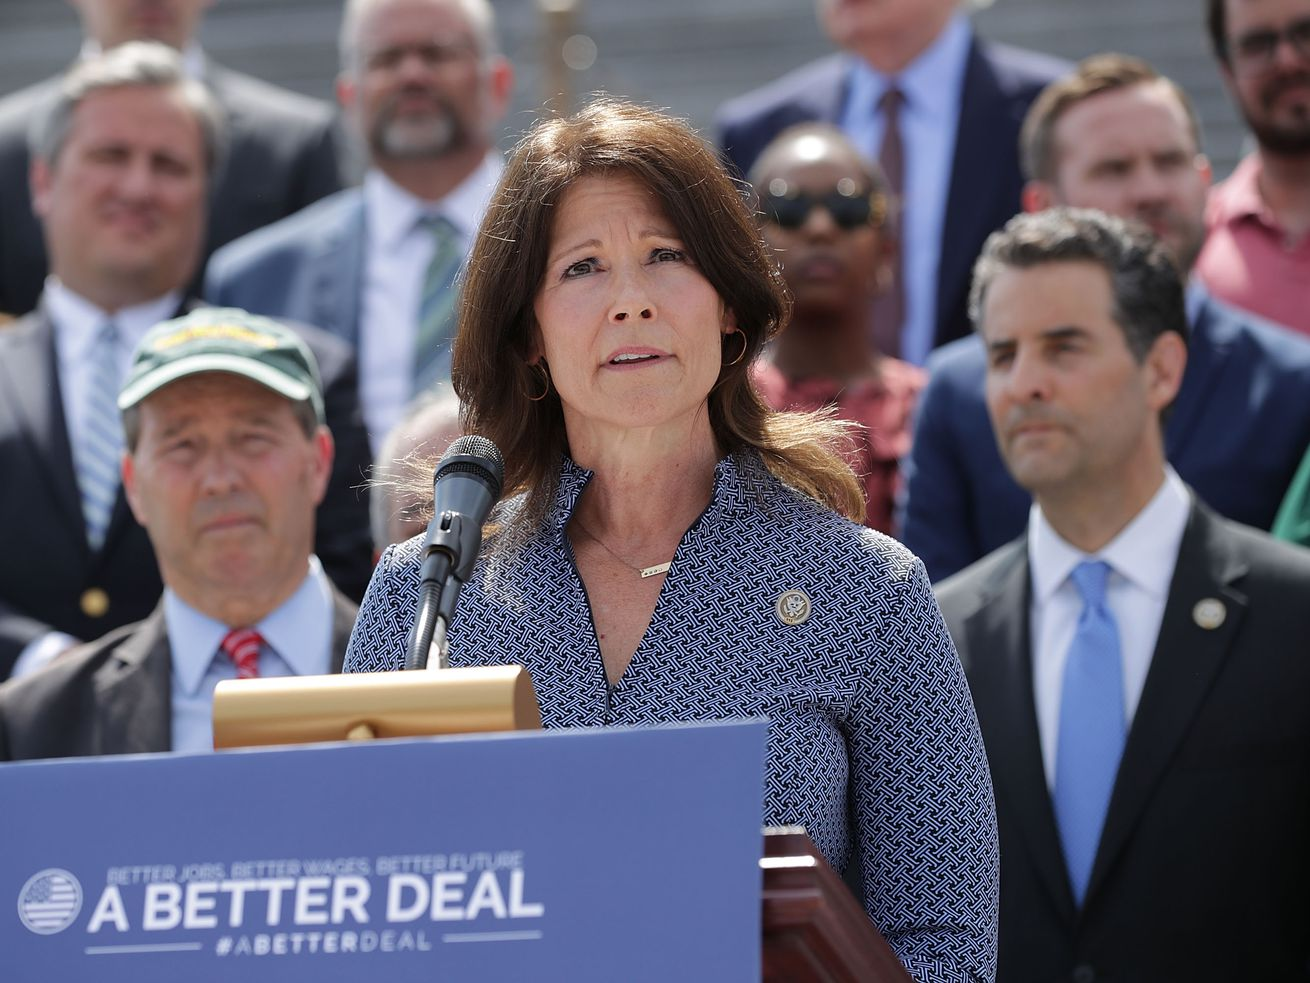 U.S. Rep. Cheri Bustos, who once led the Democratic House political operation, says 10 years is enough in Congress. That poses a potential complication for Illinois Democrats in 2022.